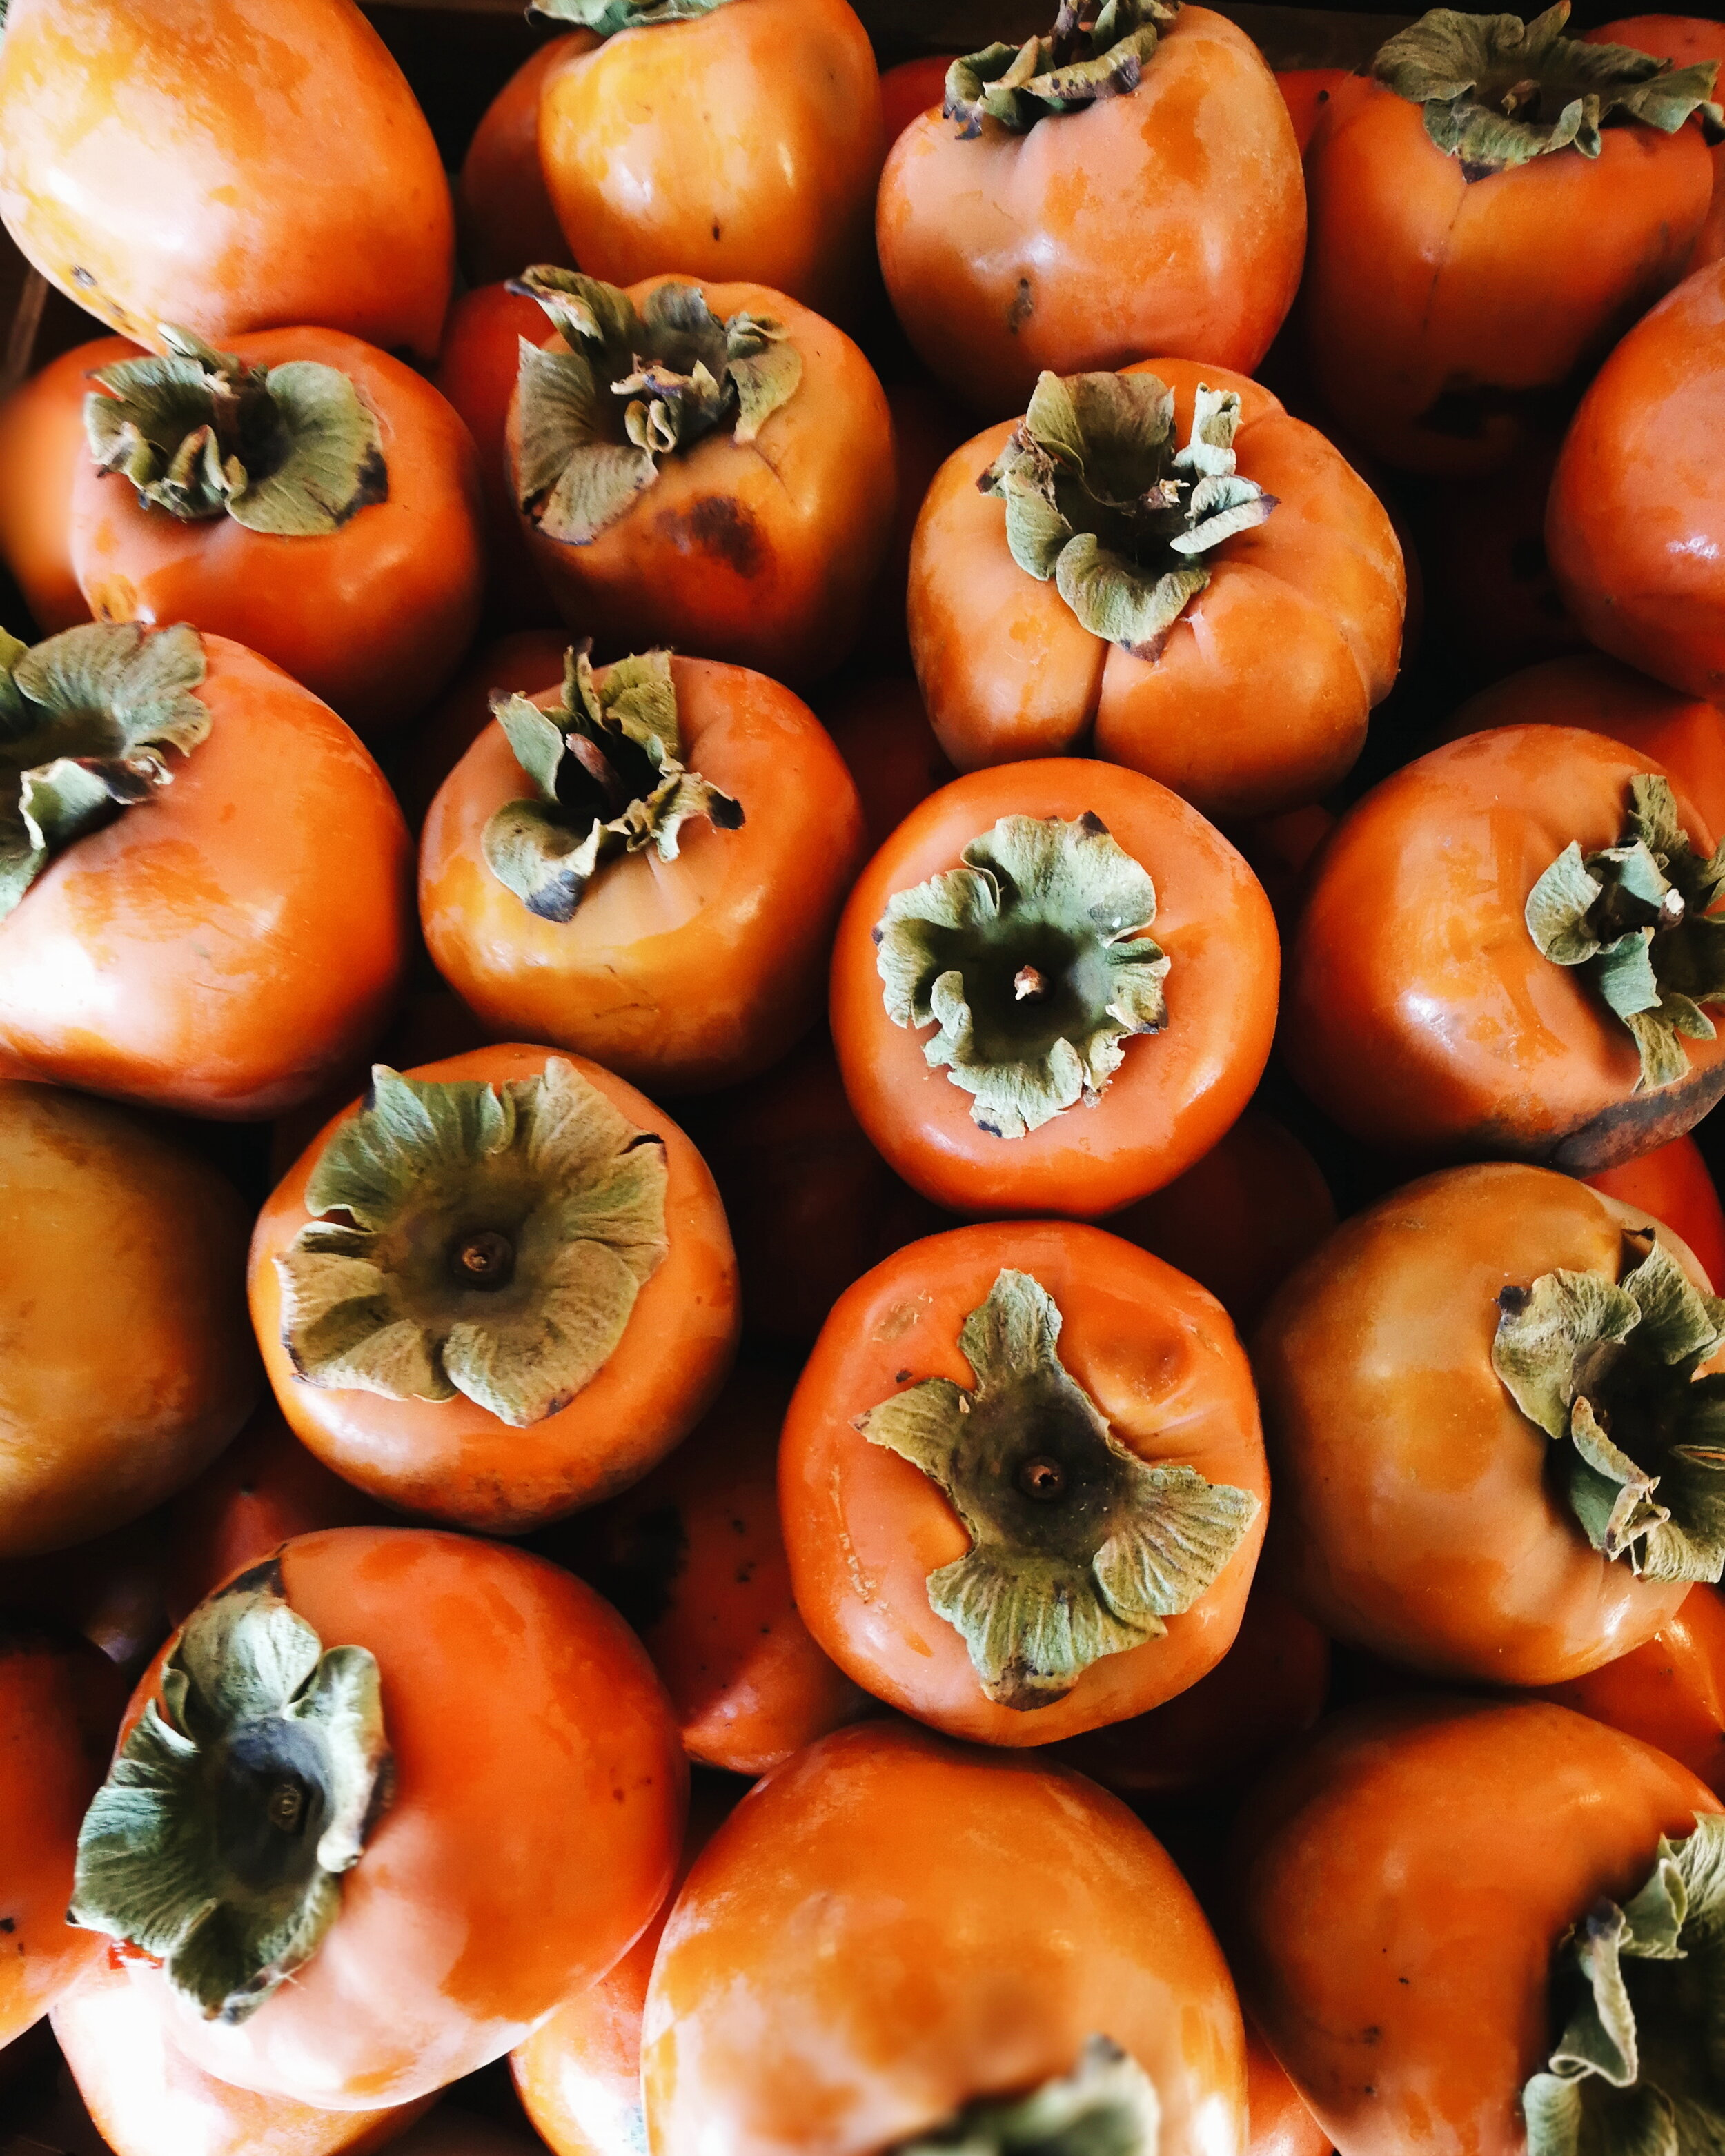 Hachiya Persimmons - Hachiya Persimmons have an acorn shape and tend to be more orange than Fuyu Persimmons. They are astringent which means they need to be really soft to eat (must have a jelly like consistency). They are typically used for baking and cooking.